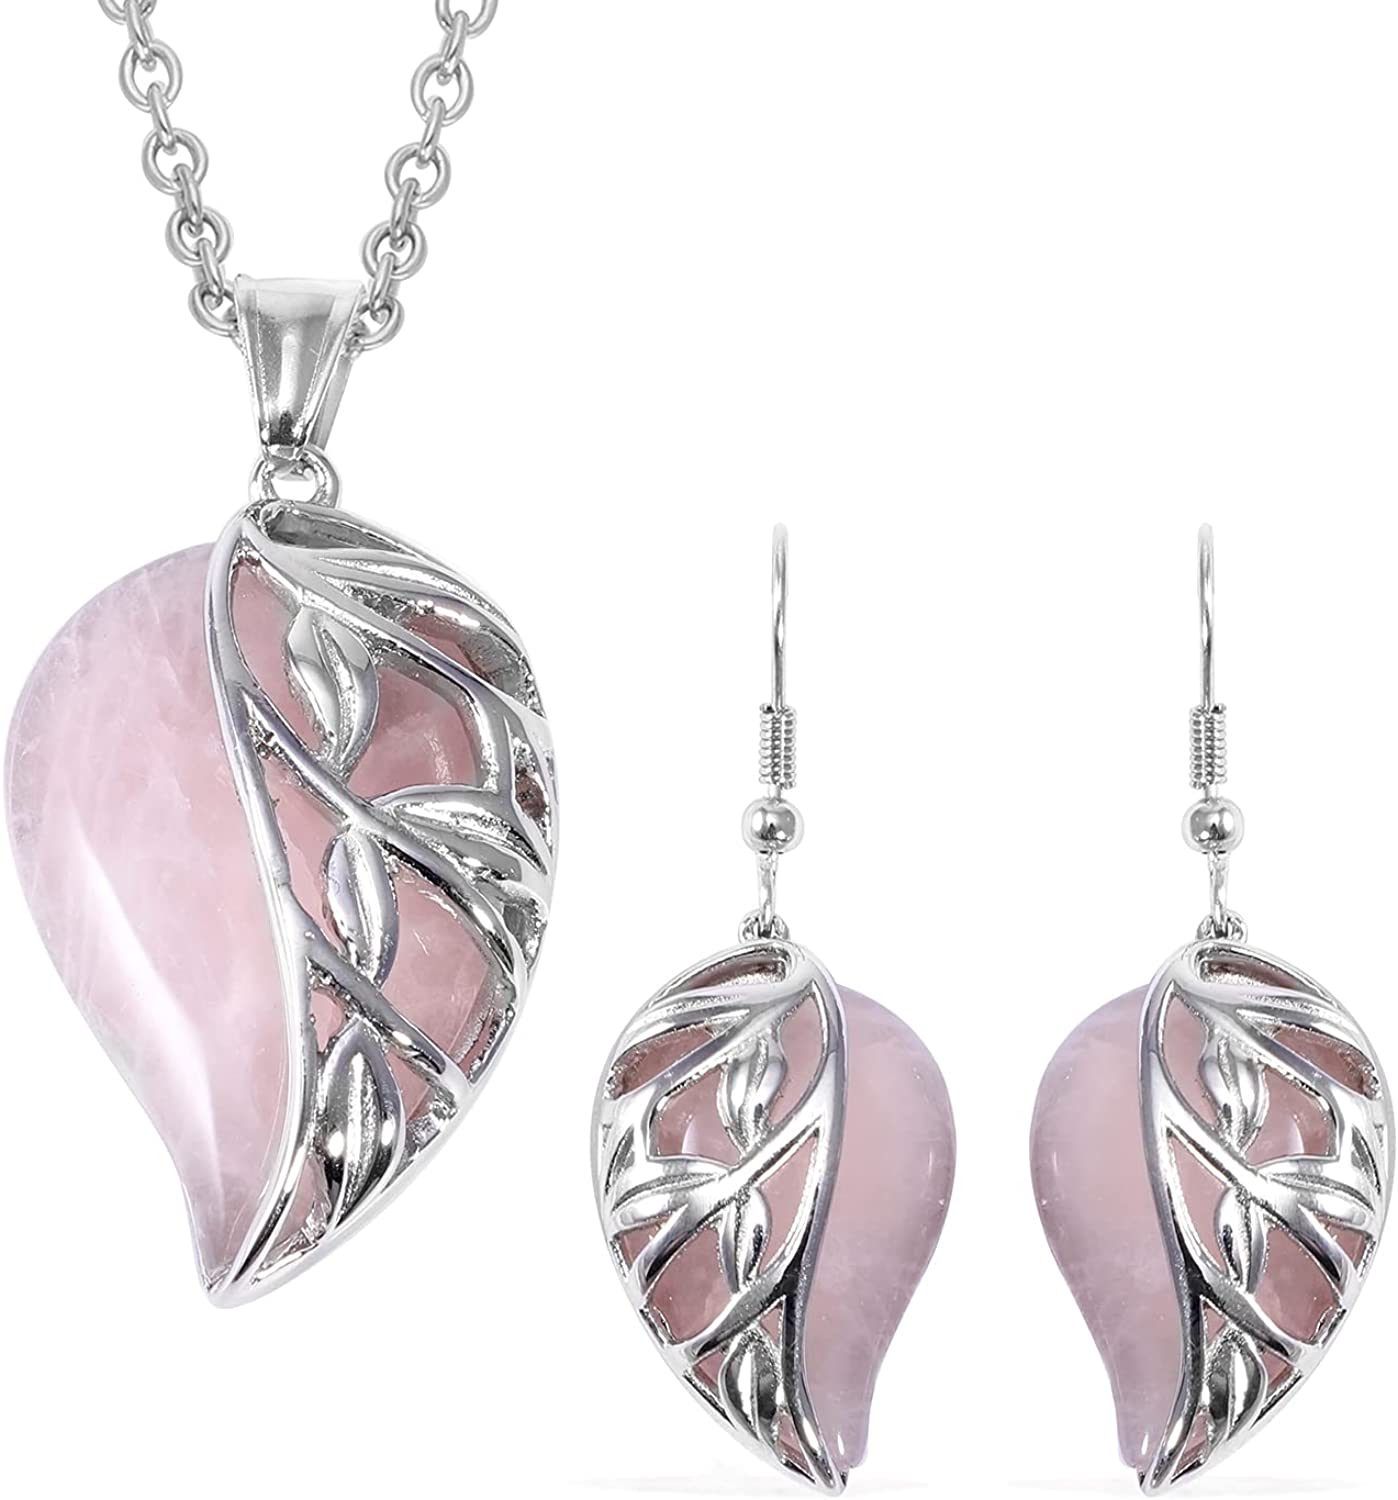 Shop LC Stainless Steel Leaf Earrings Lightweight Beaded Dainty Necklace Pendant Set Bohemian Vintage Crystal Delicate Jewelry for Women Size 20